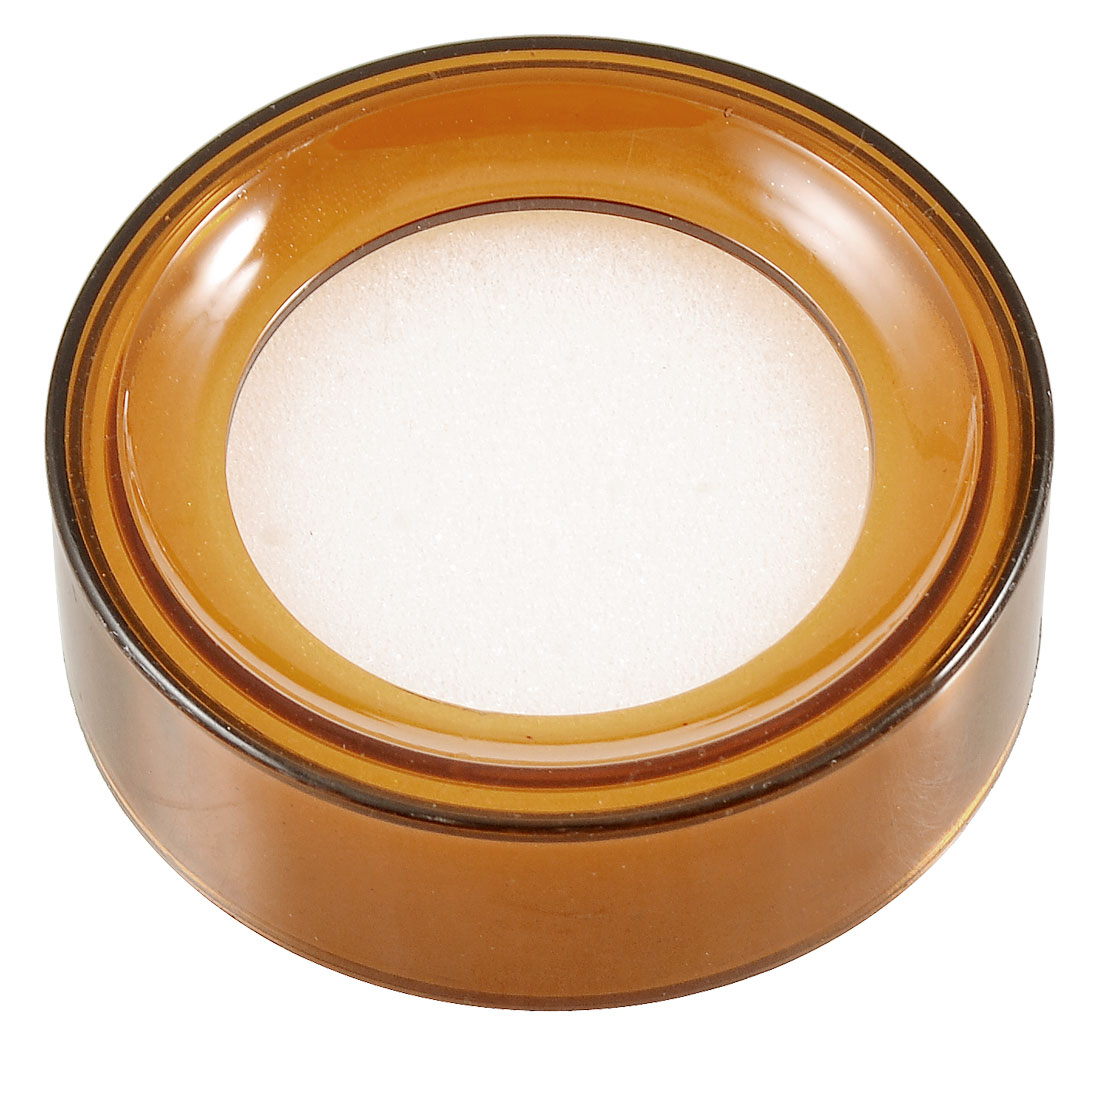 Amber Plastic Round Case White Sponge Finger Wet for Money Casher